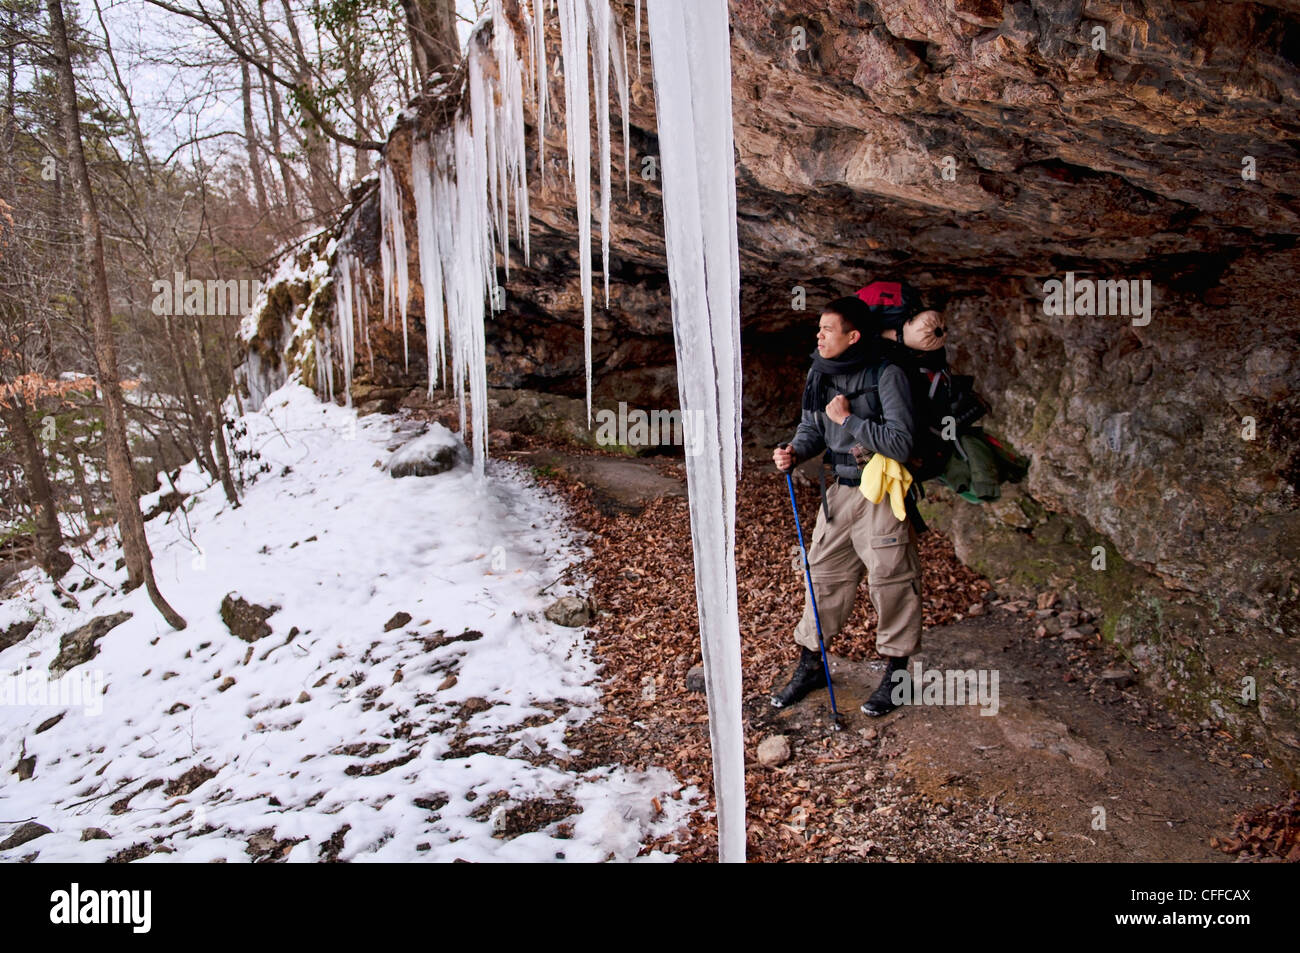 A young man rests from backpacking in the snow and ice under the cover of a rock ledge. - Stock Image